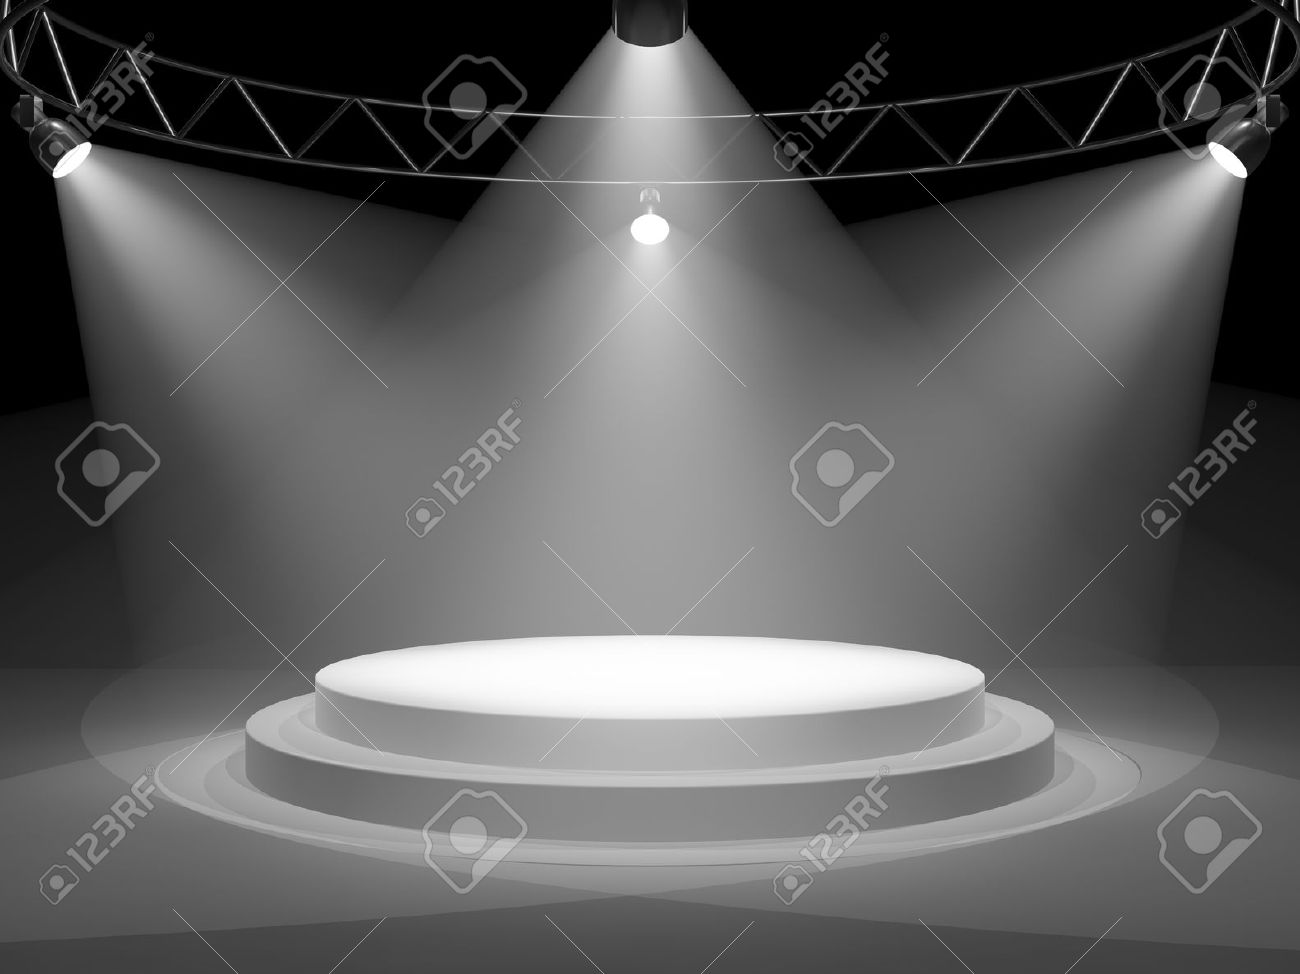 Stage lights background related keywords amp suggestions stage lights - Empty Stage In Spot Lights Stock Photo 12878768